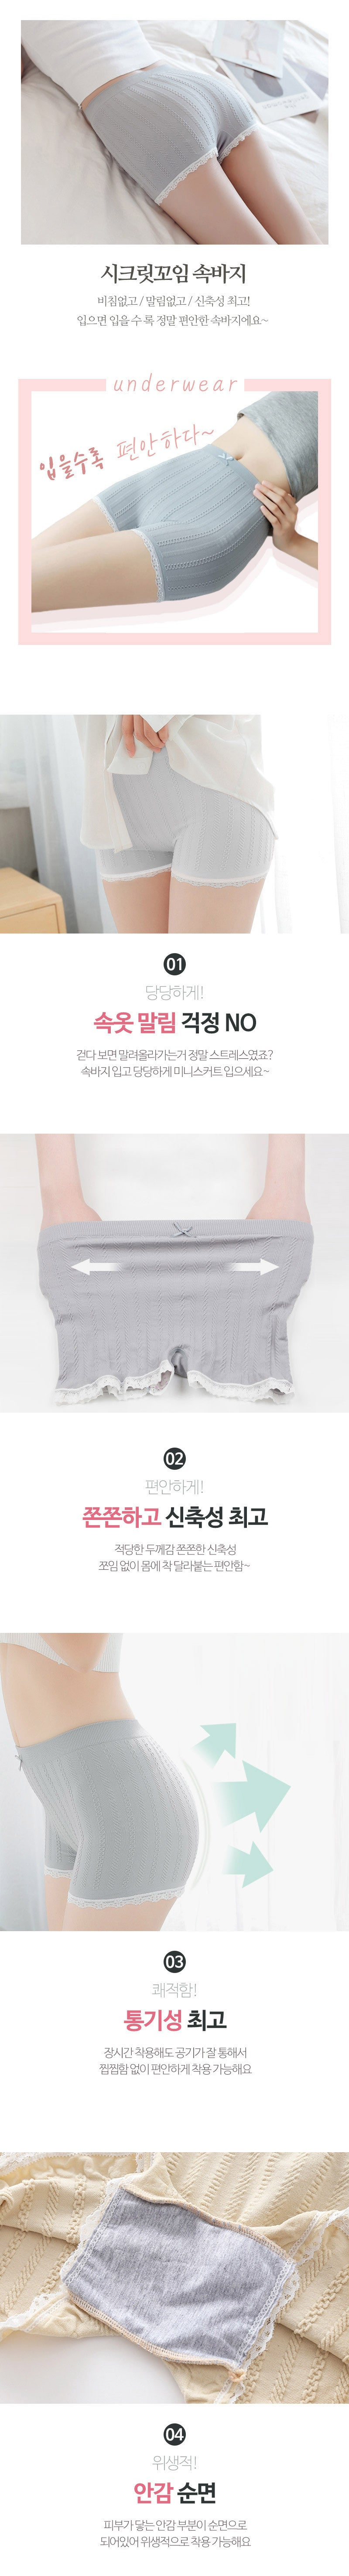 Stretchable Comfortable Underwear